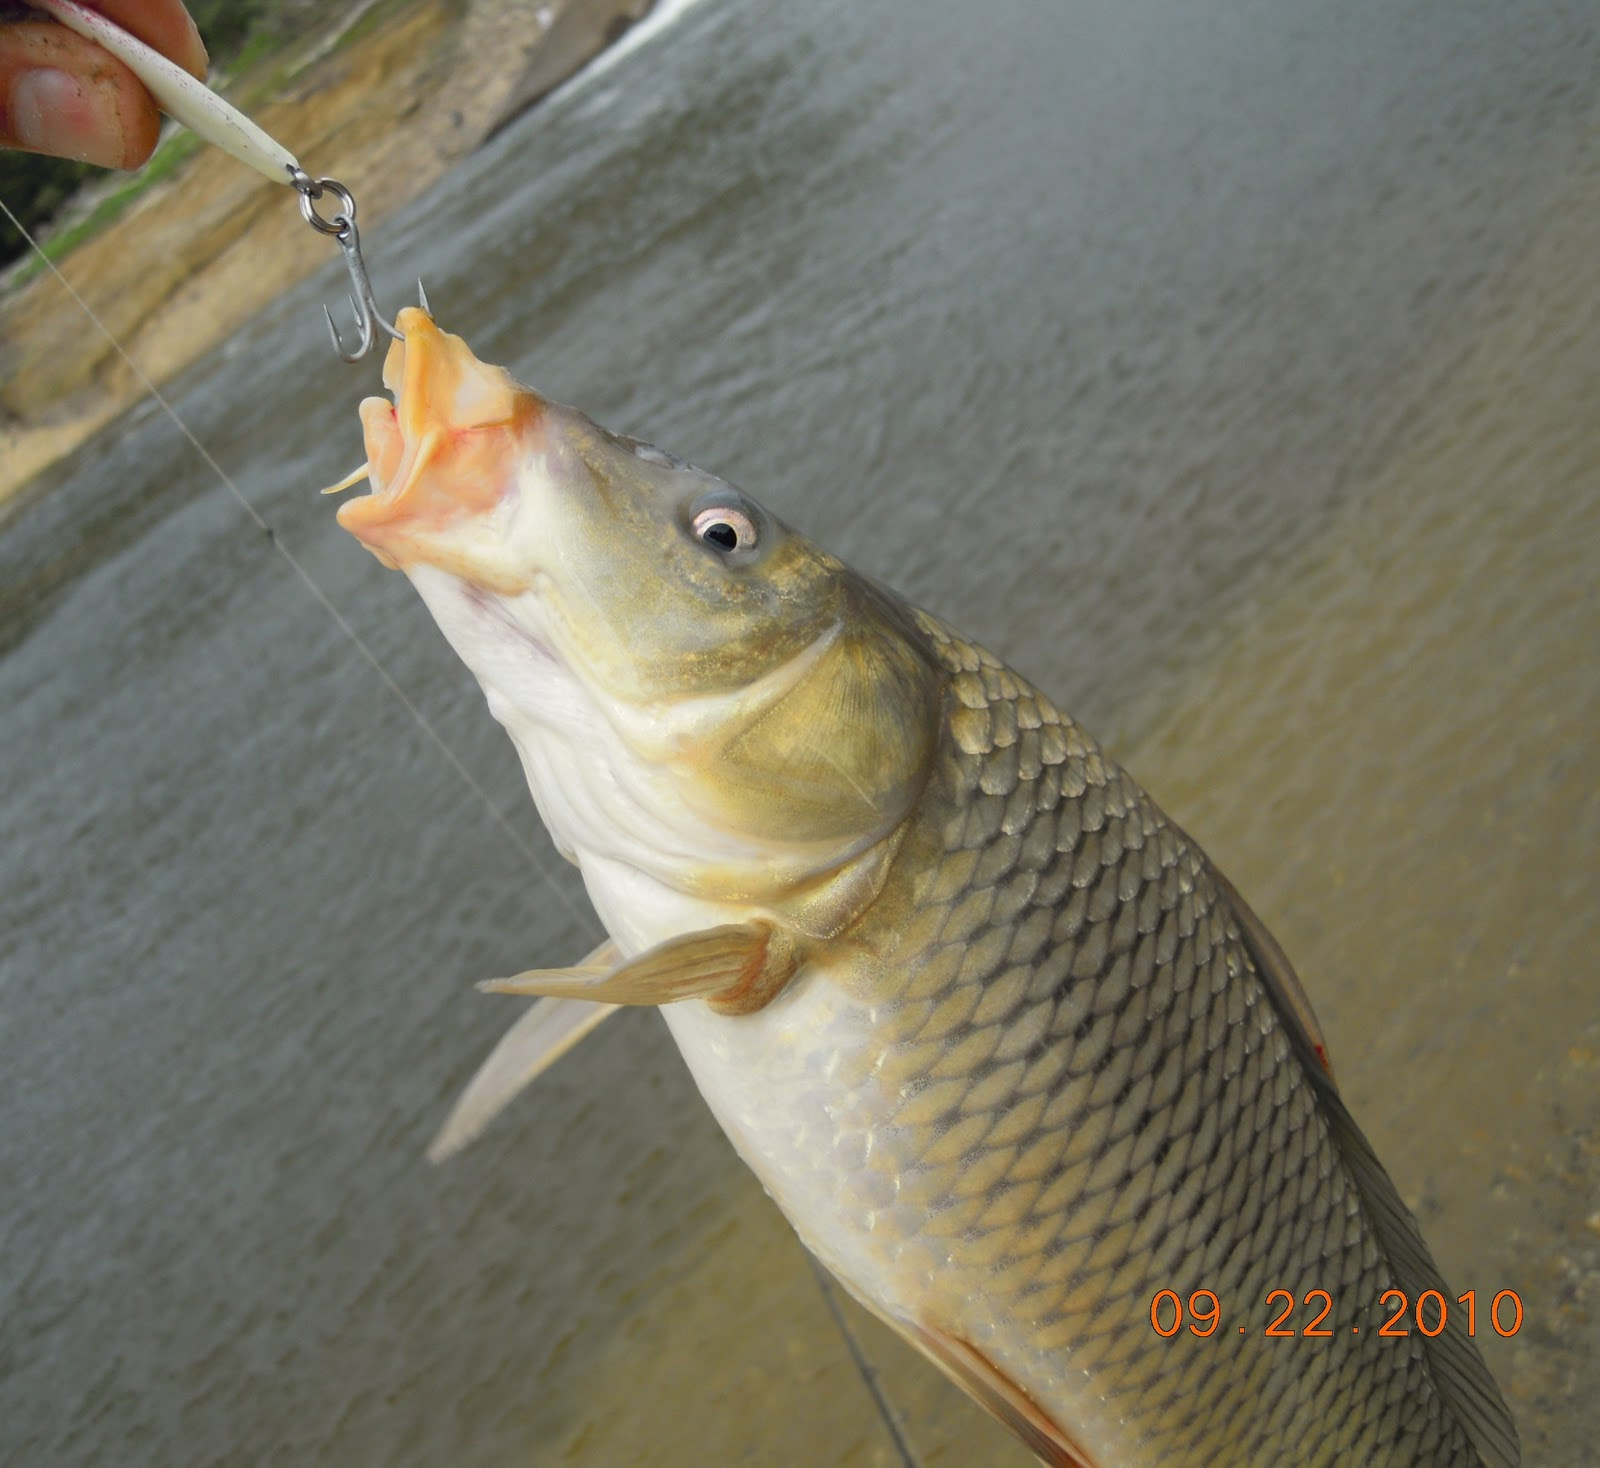 Fishndave fishing for under utilized fish species in 2010 for Fishing for carp